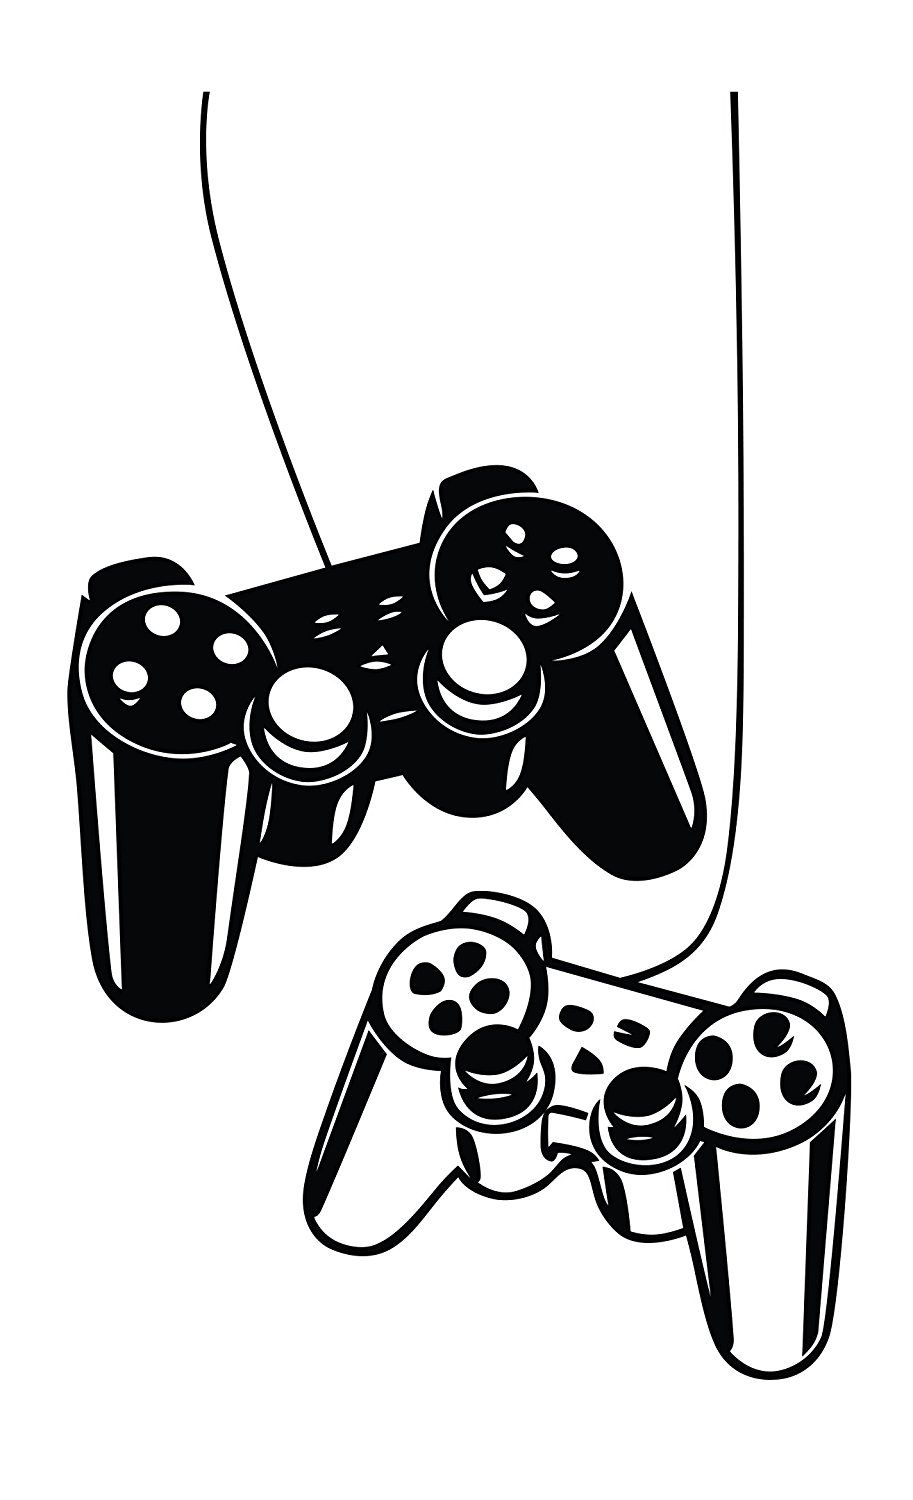 Playstation Controllers Gaming Joystick Wall Decal Home Decor Art